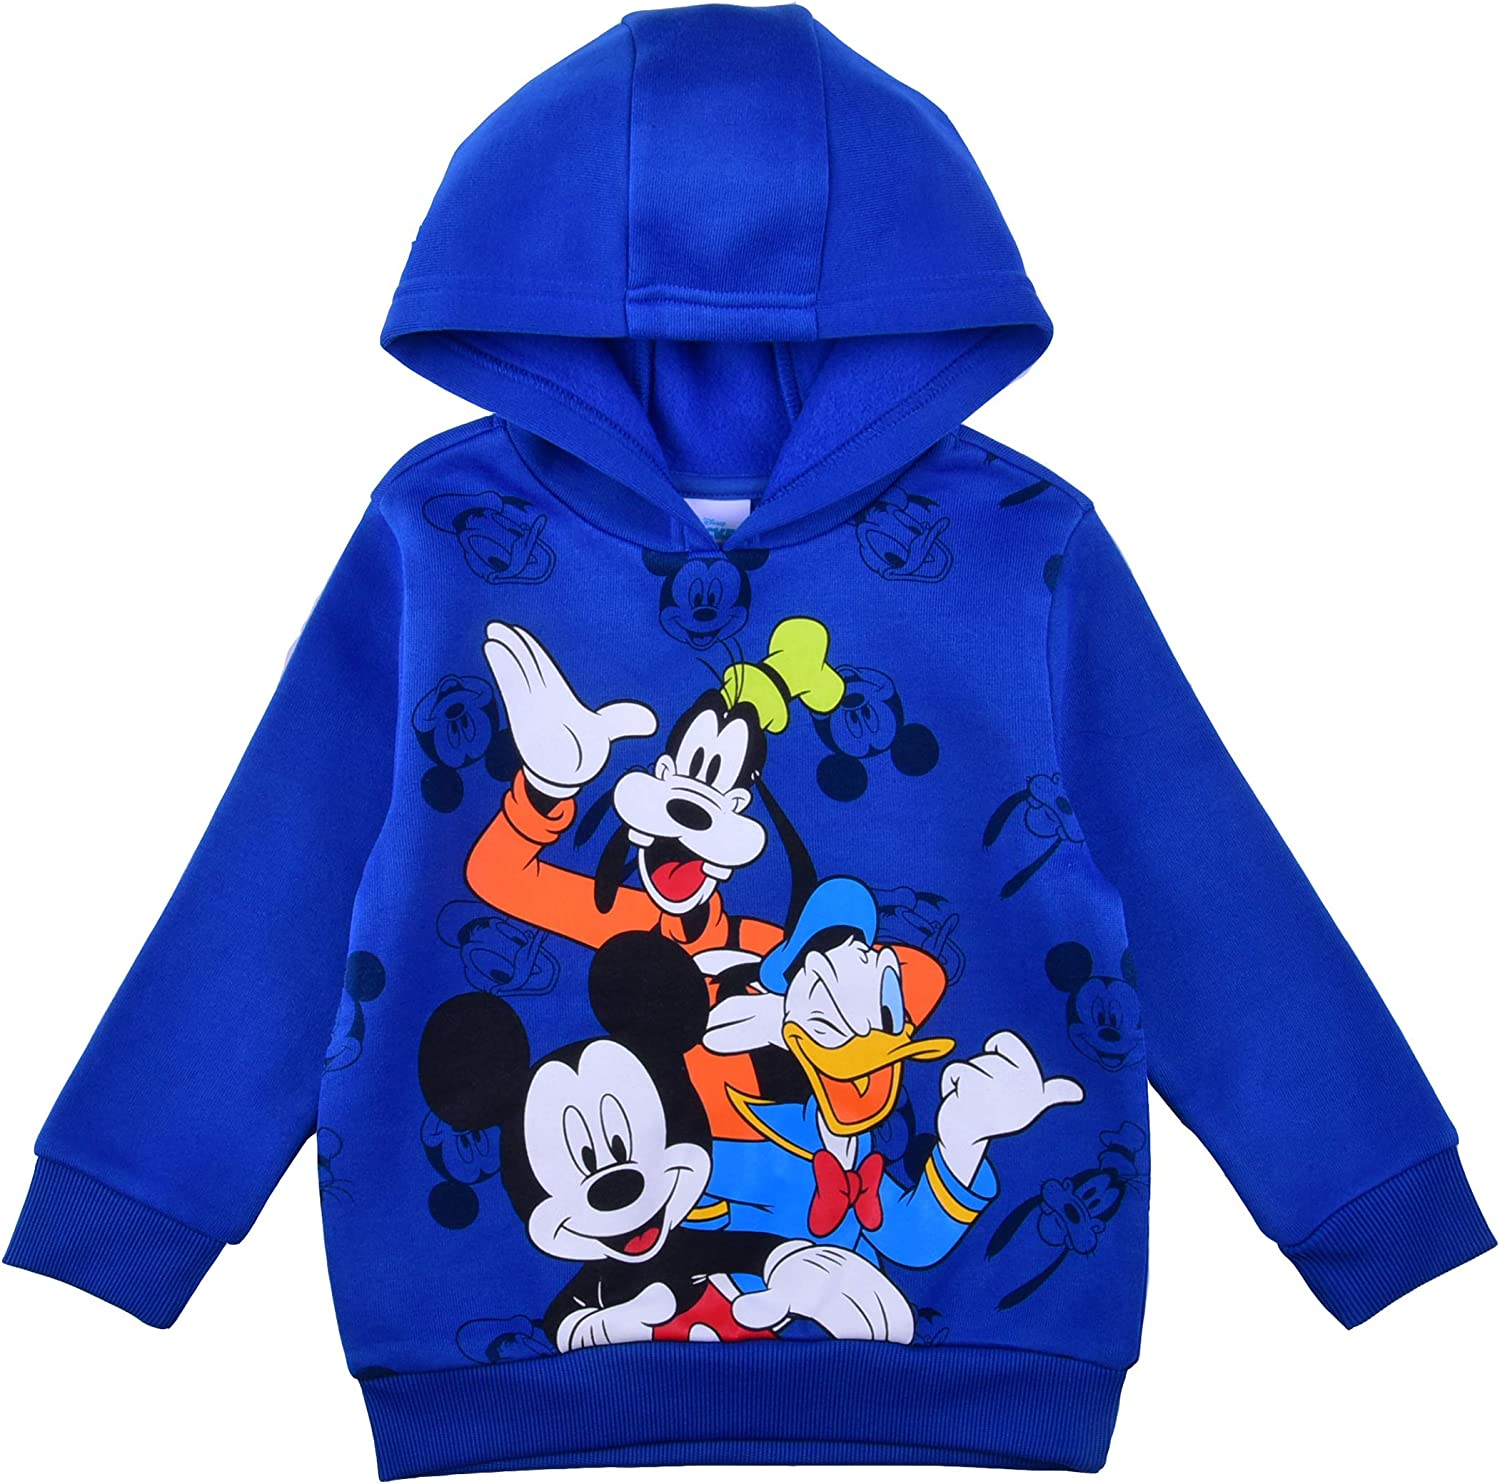 Disney Mickey and Friends Pullover H Kid's Max 46% OFF Boys Ranking integrated 1st place Hoodie for